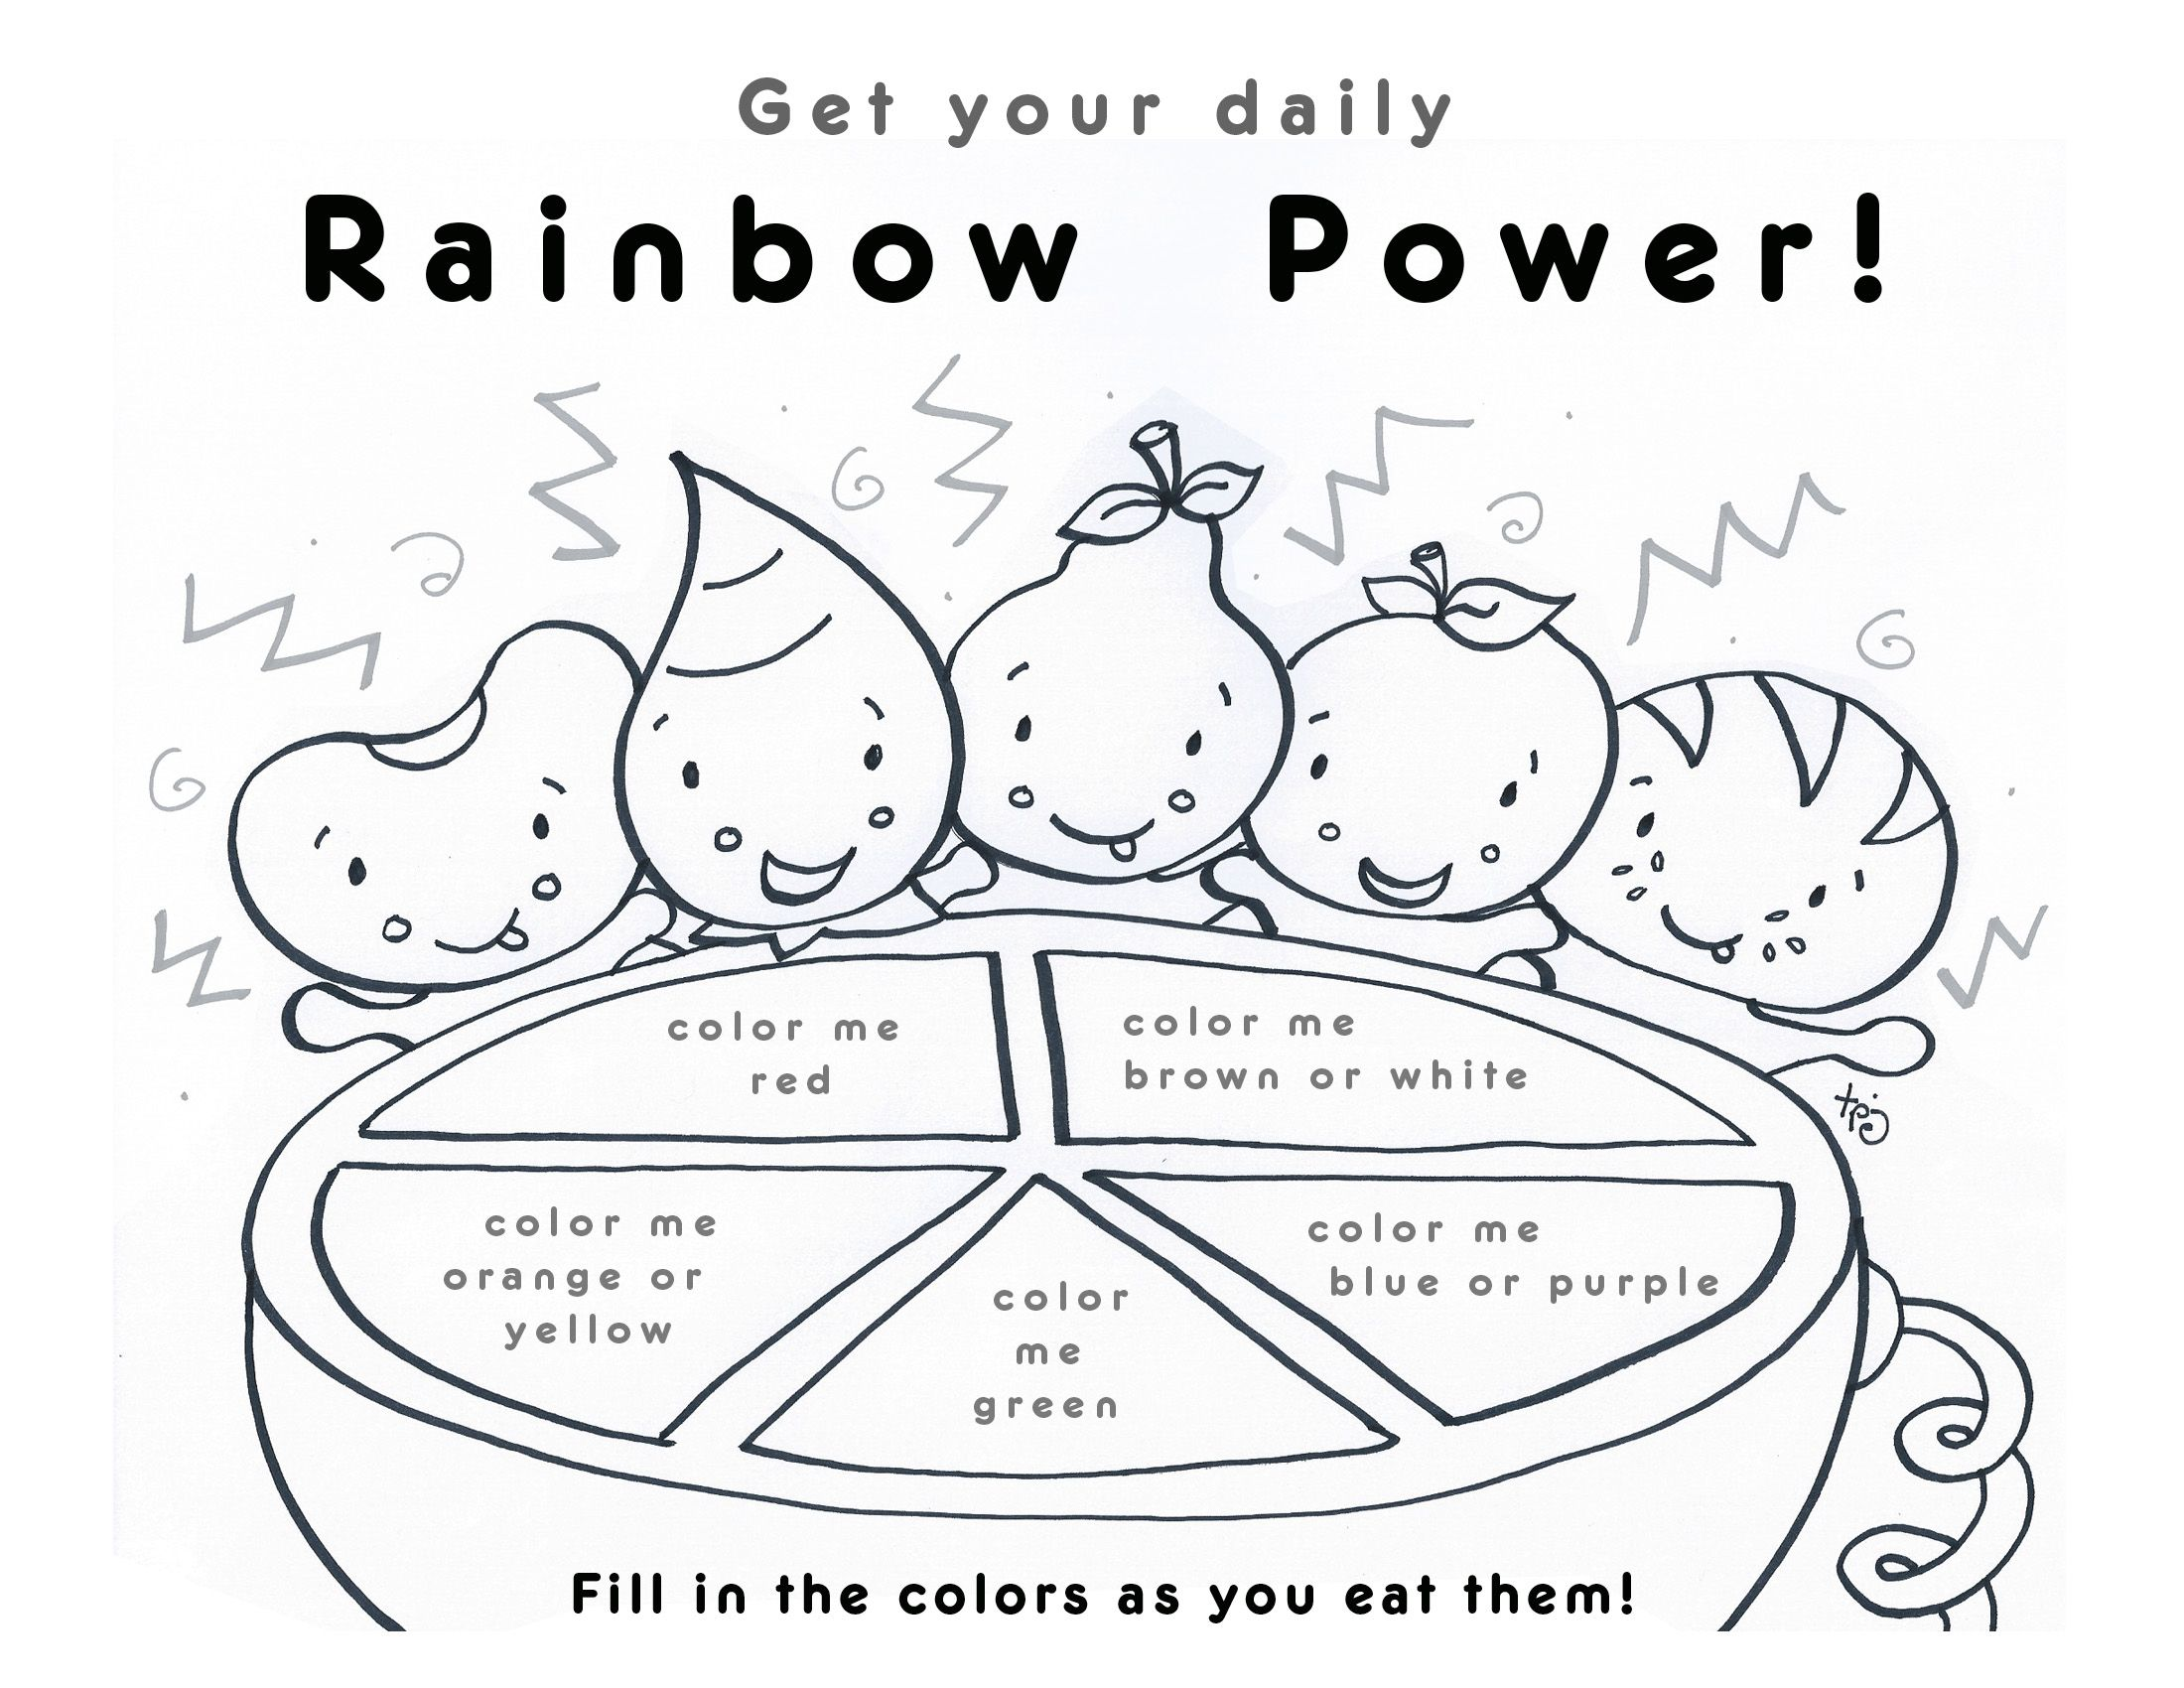 Yummi App Yum Yum Kids Coloring Pages Food Coloring Pages Healthy